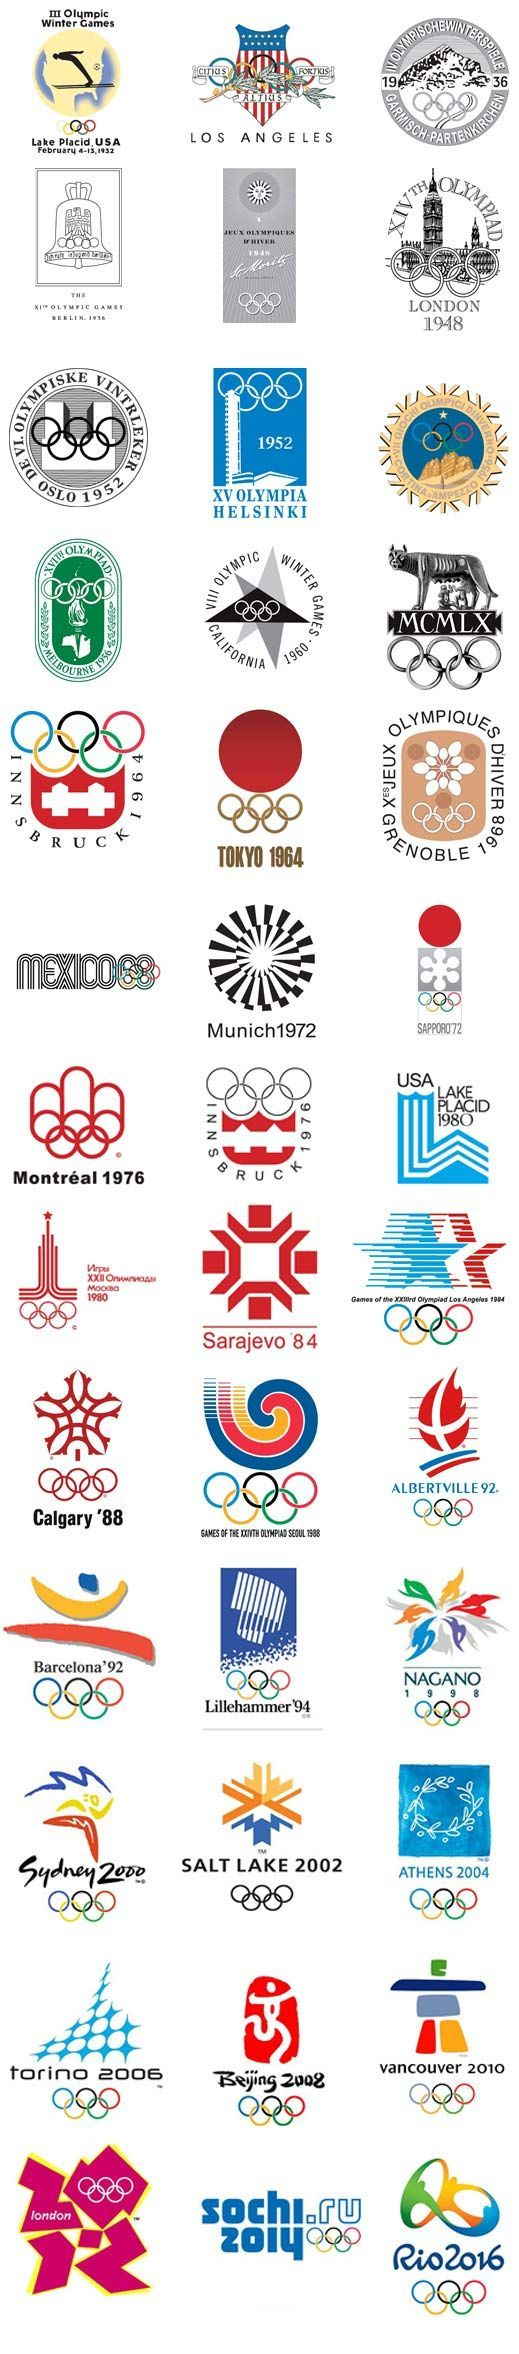 Olympic Logos history 1932 to rio 2016 (except Atlanta '96)